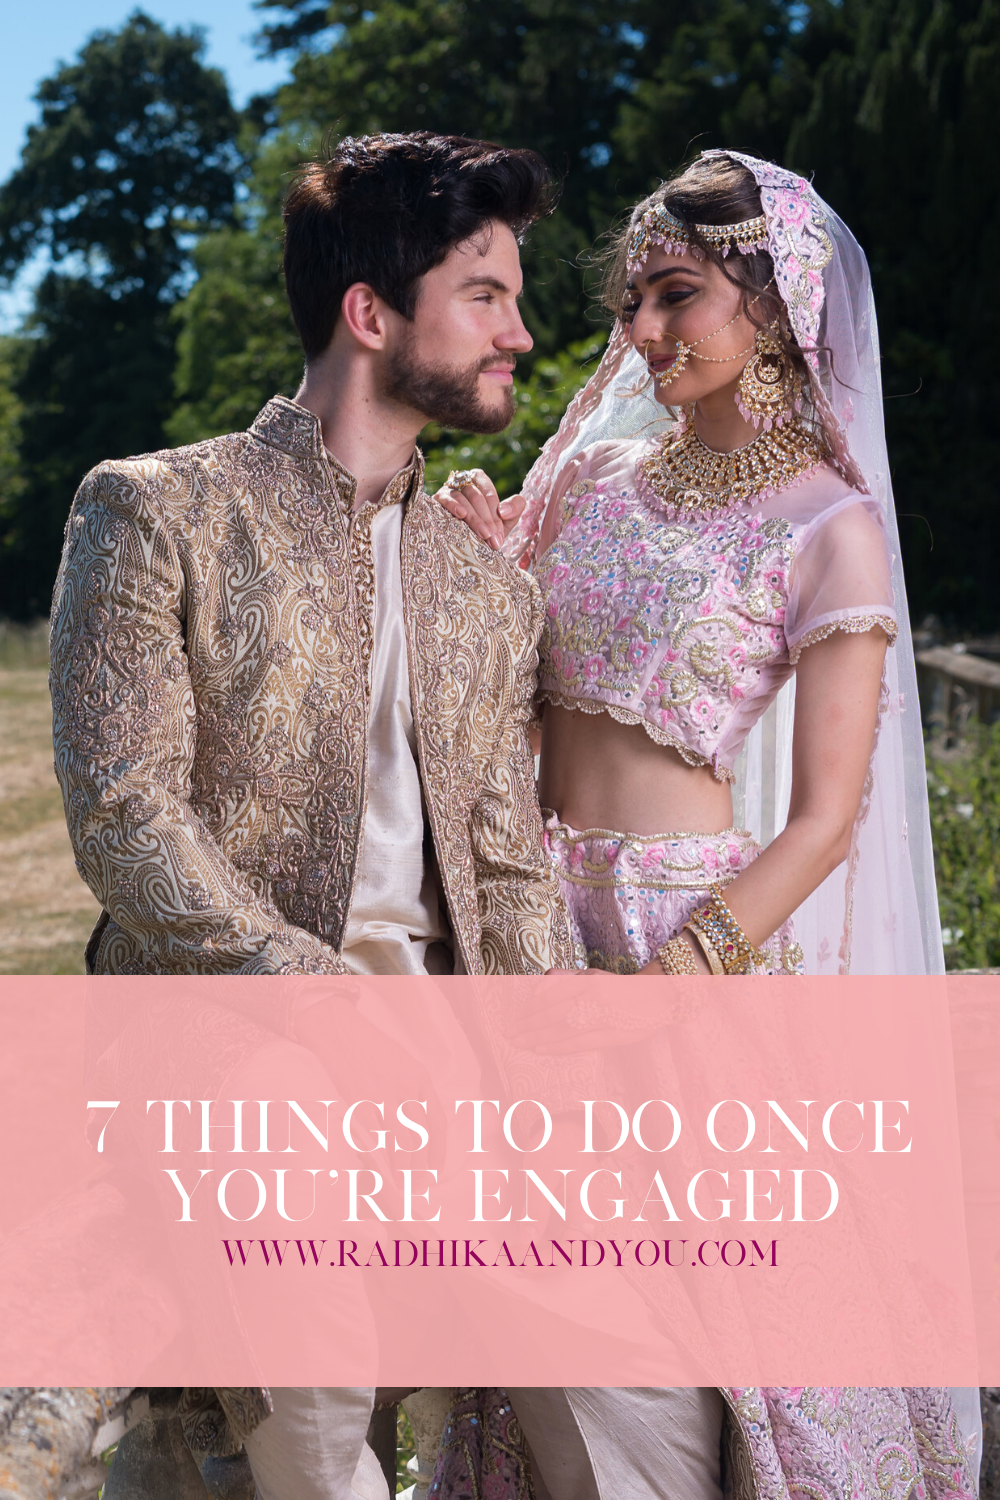 radhikaandyou-7-things-to-do-once-you-are-engaged